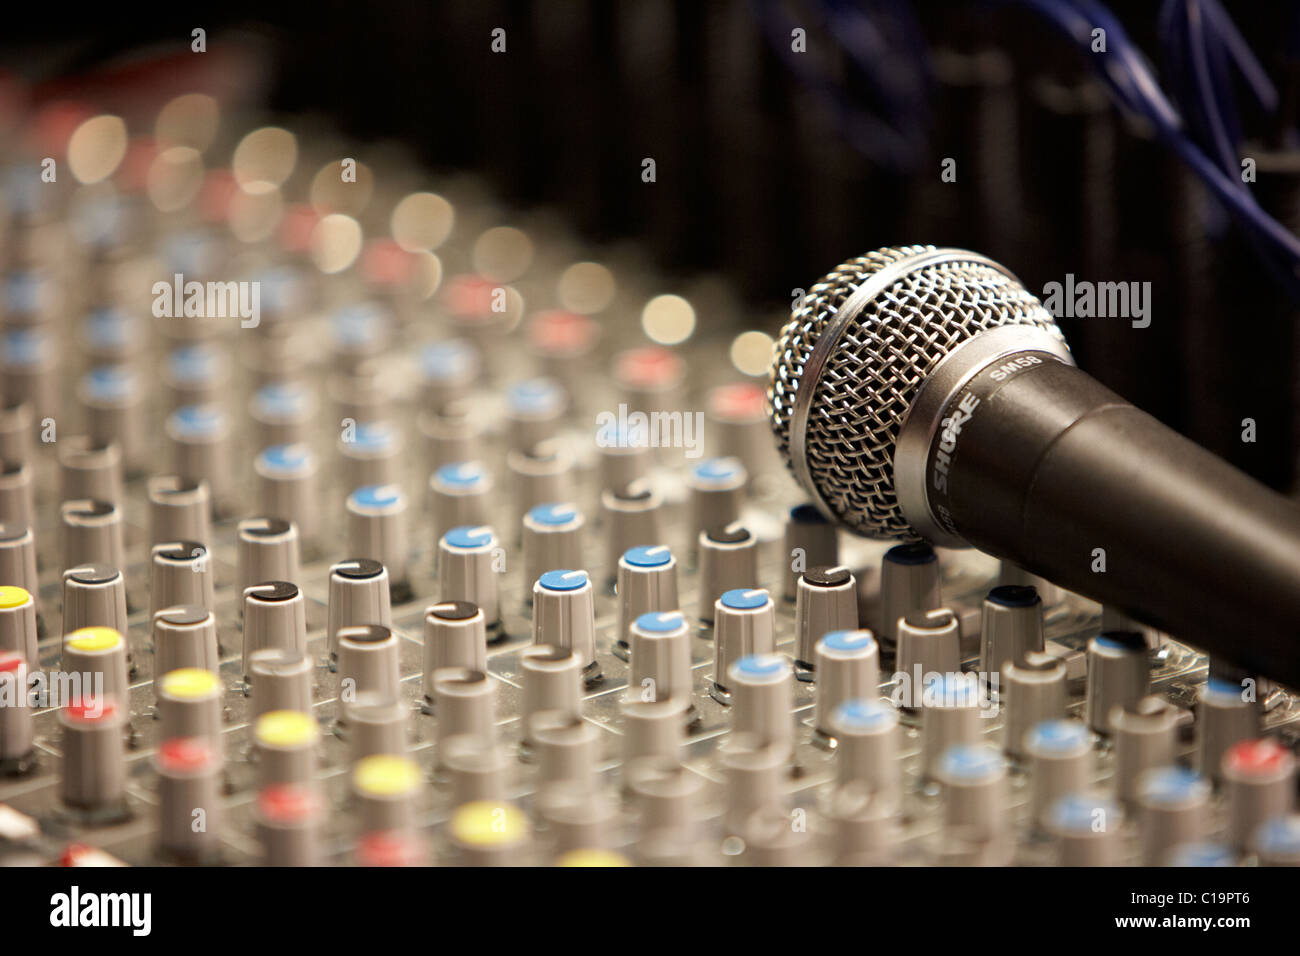 mic on an audio mixing desk in a theatre concert hall - Stock Image